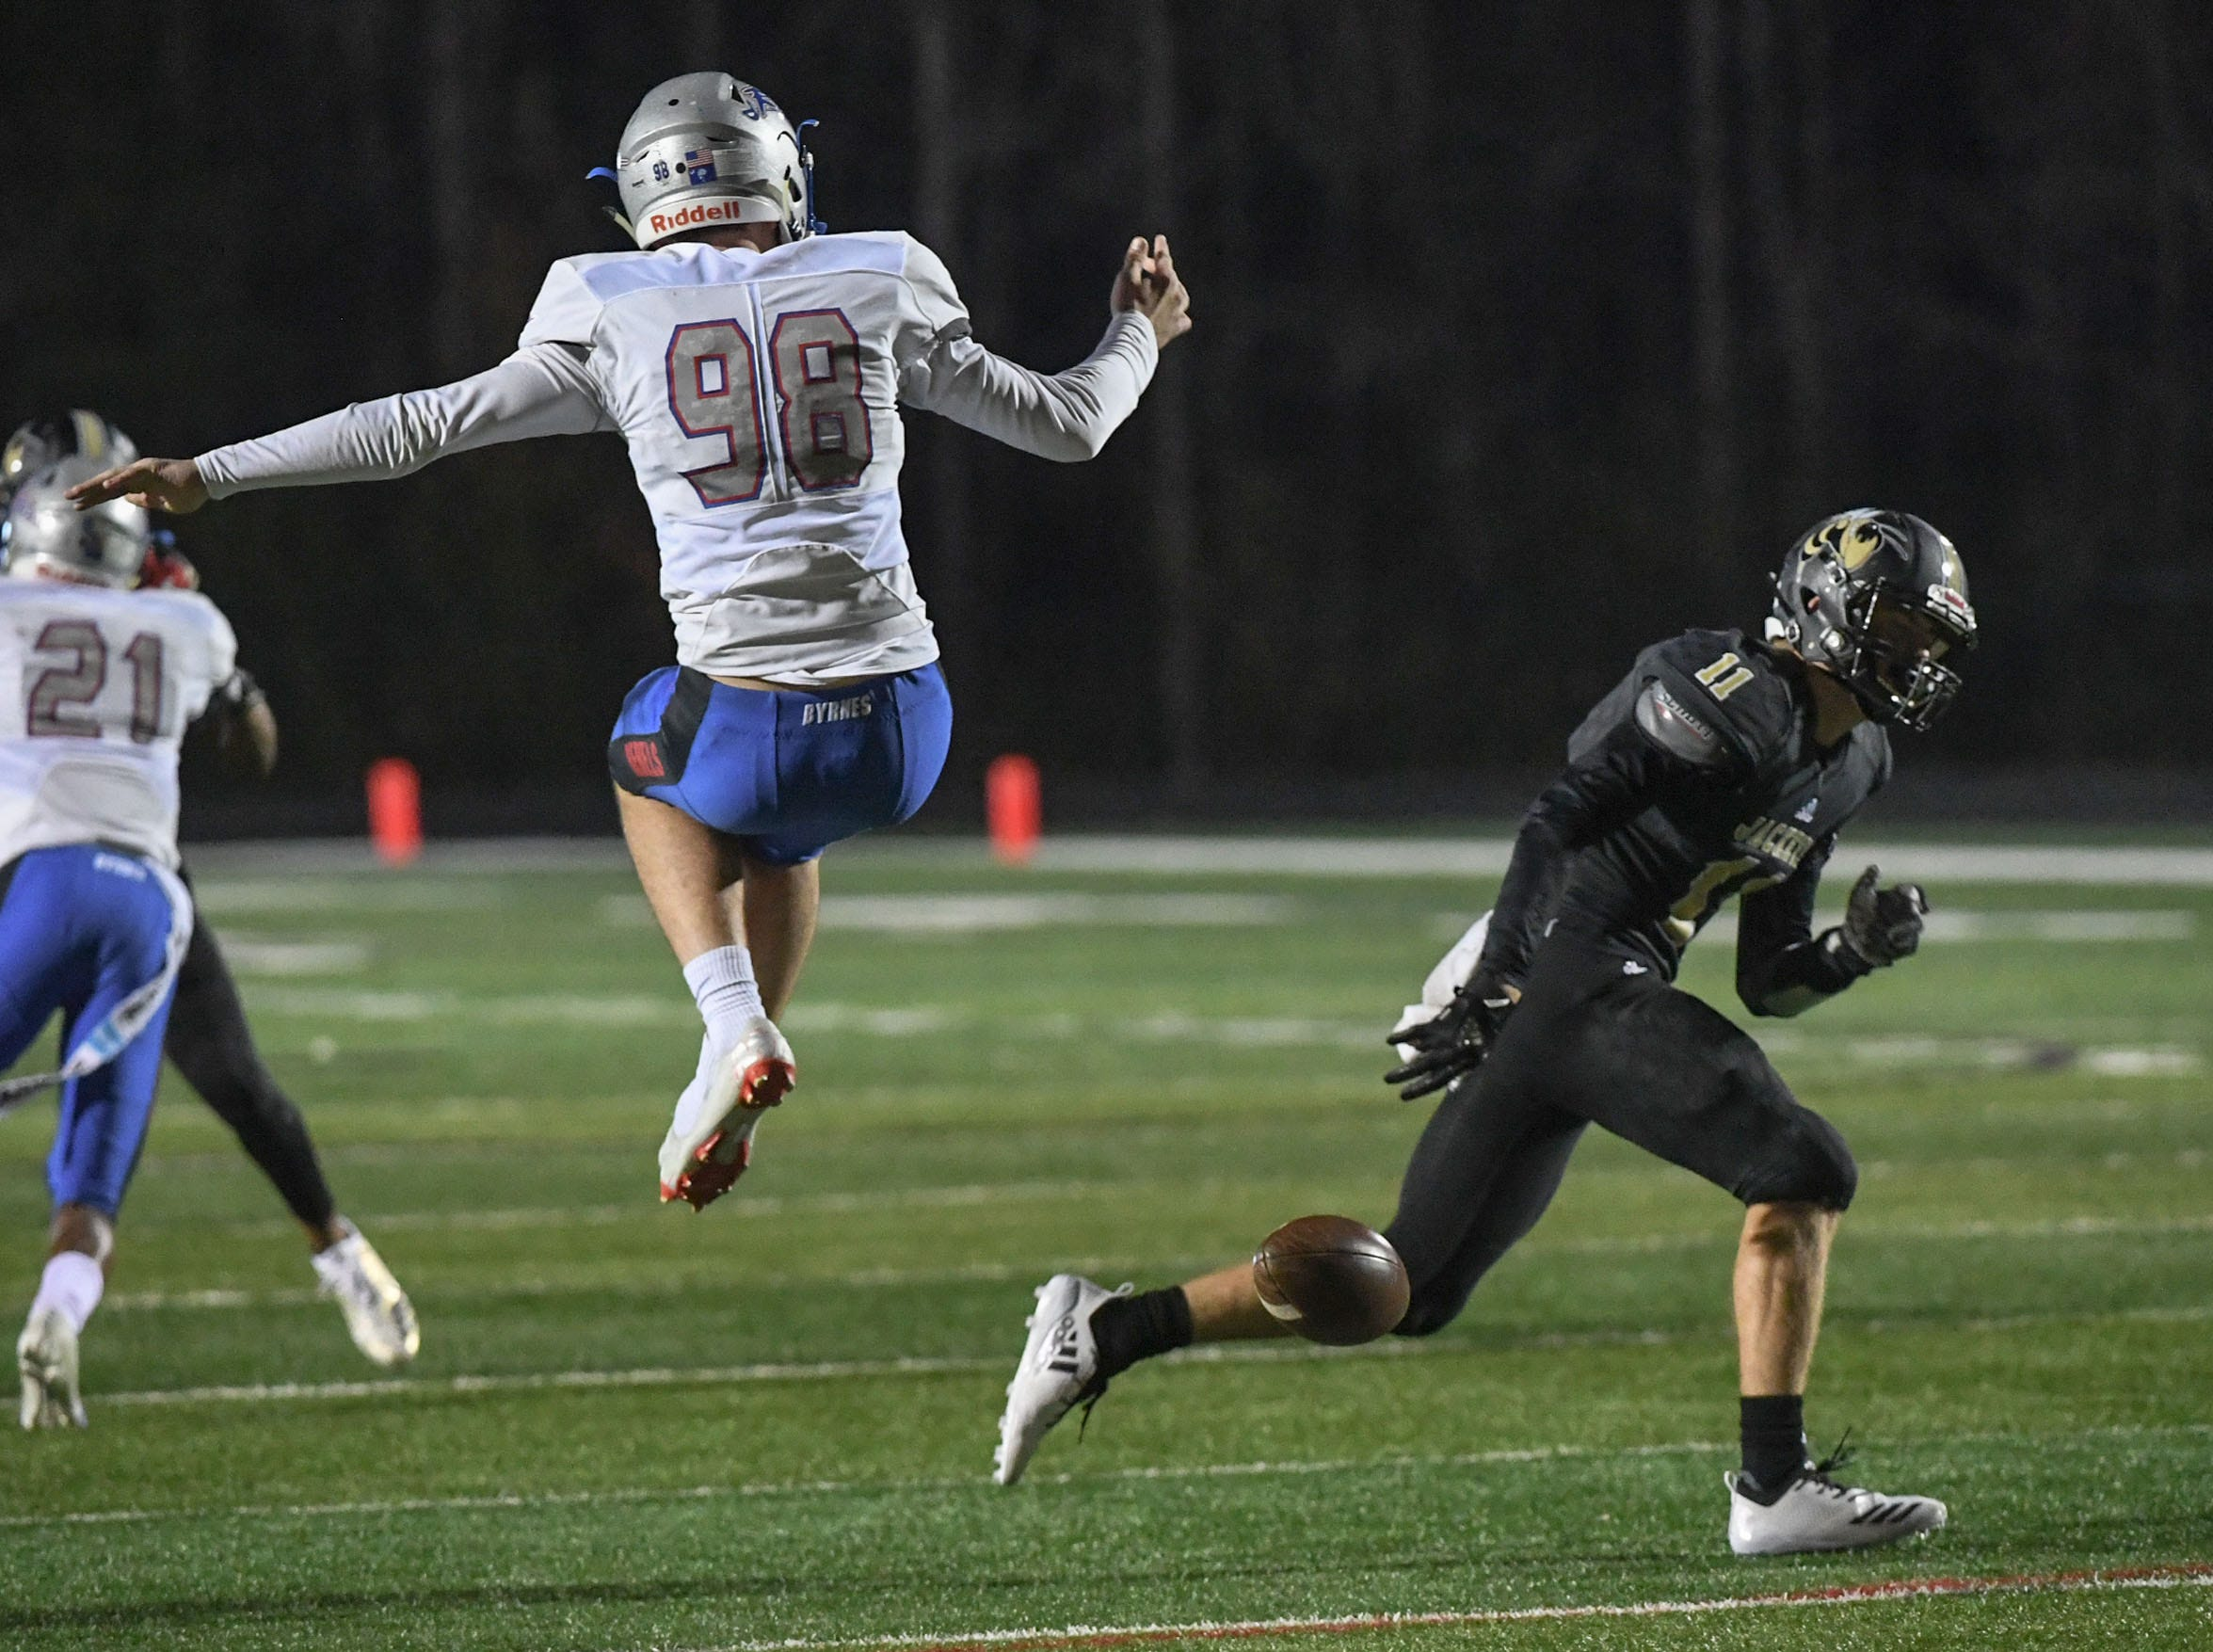 TL Hanna senior Trey Palmer (11) blocks a punt attempt by Byrnes Clayton Crile (98) during the first quarter of the Class AAAAA state playoffs at TL Hanna High School in Anderson on Friday, November 30, 2018.